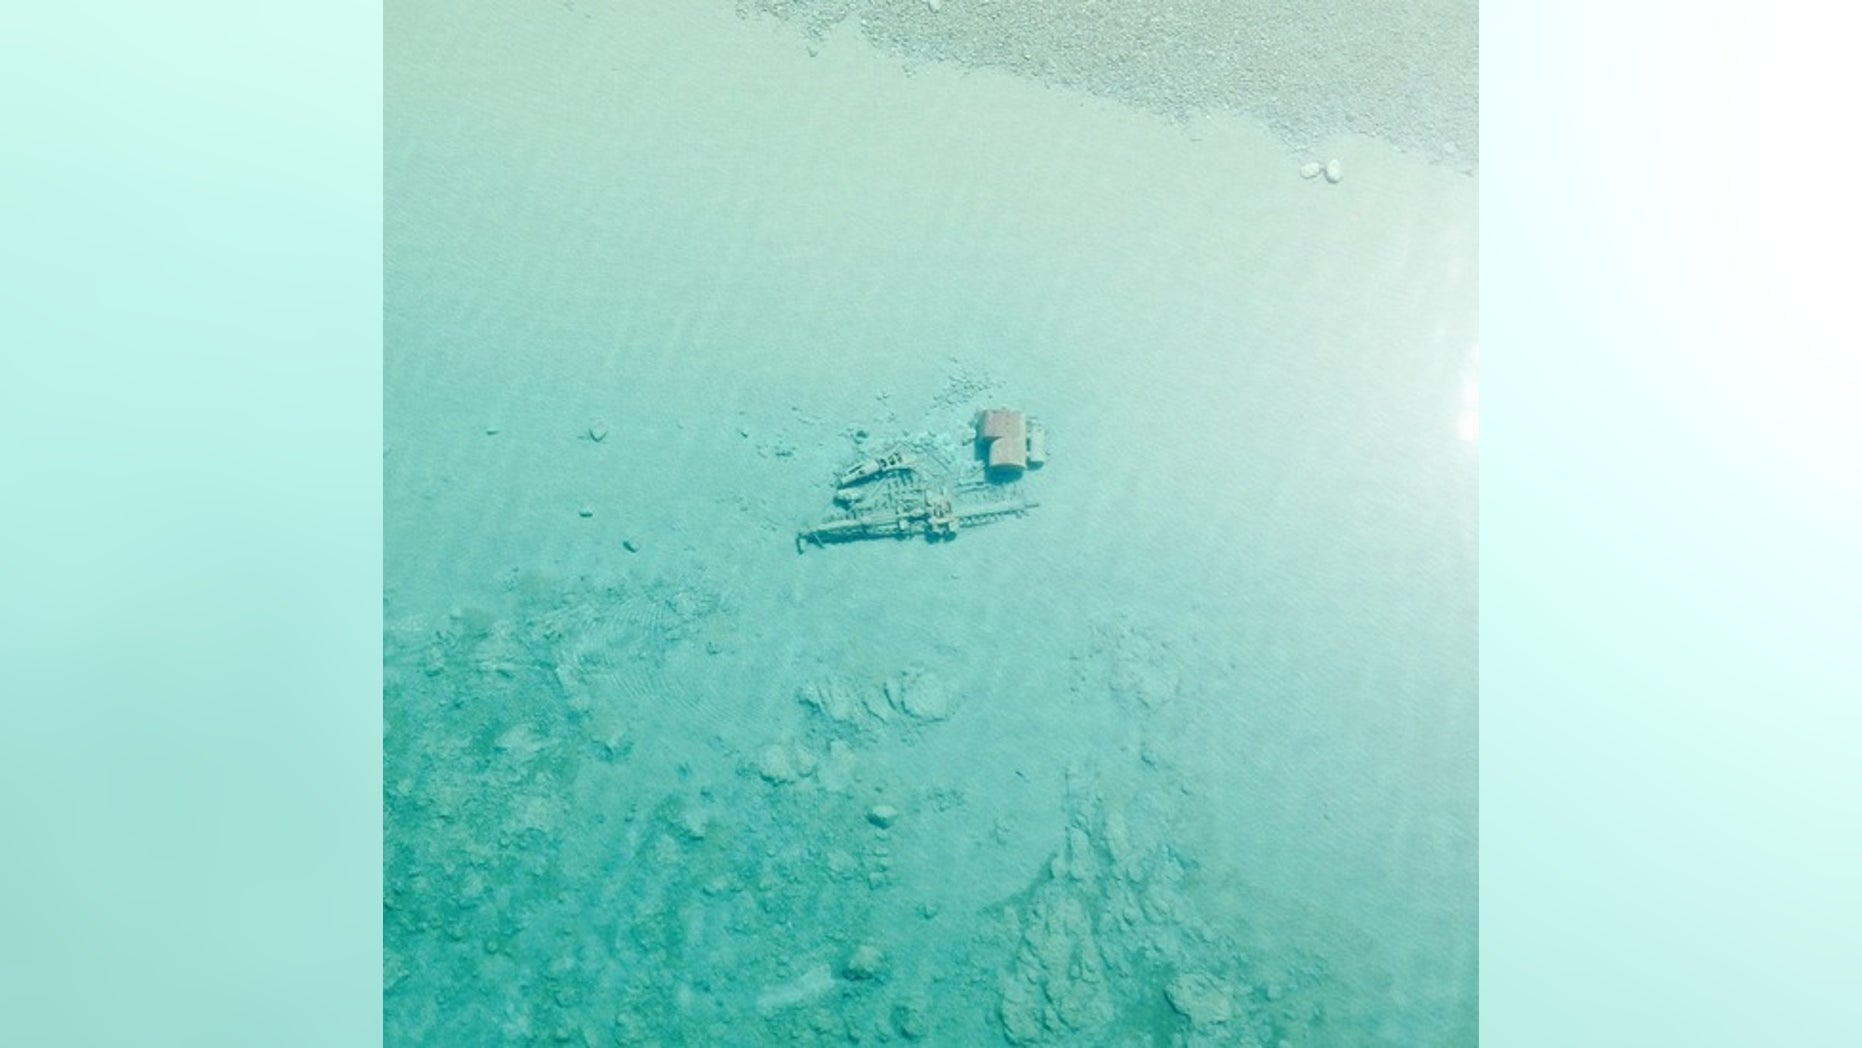 The wreck of the Rising Sun rests in 6-12 feet of water.